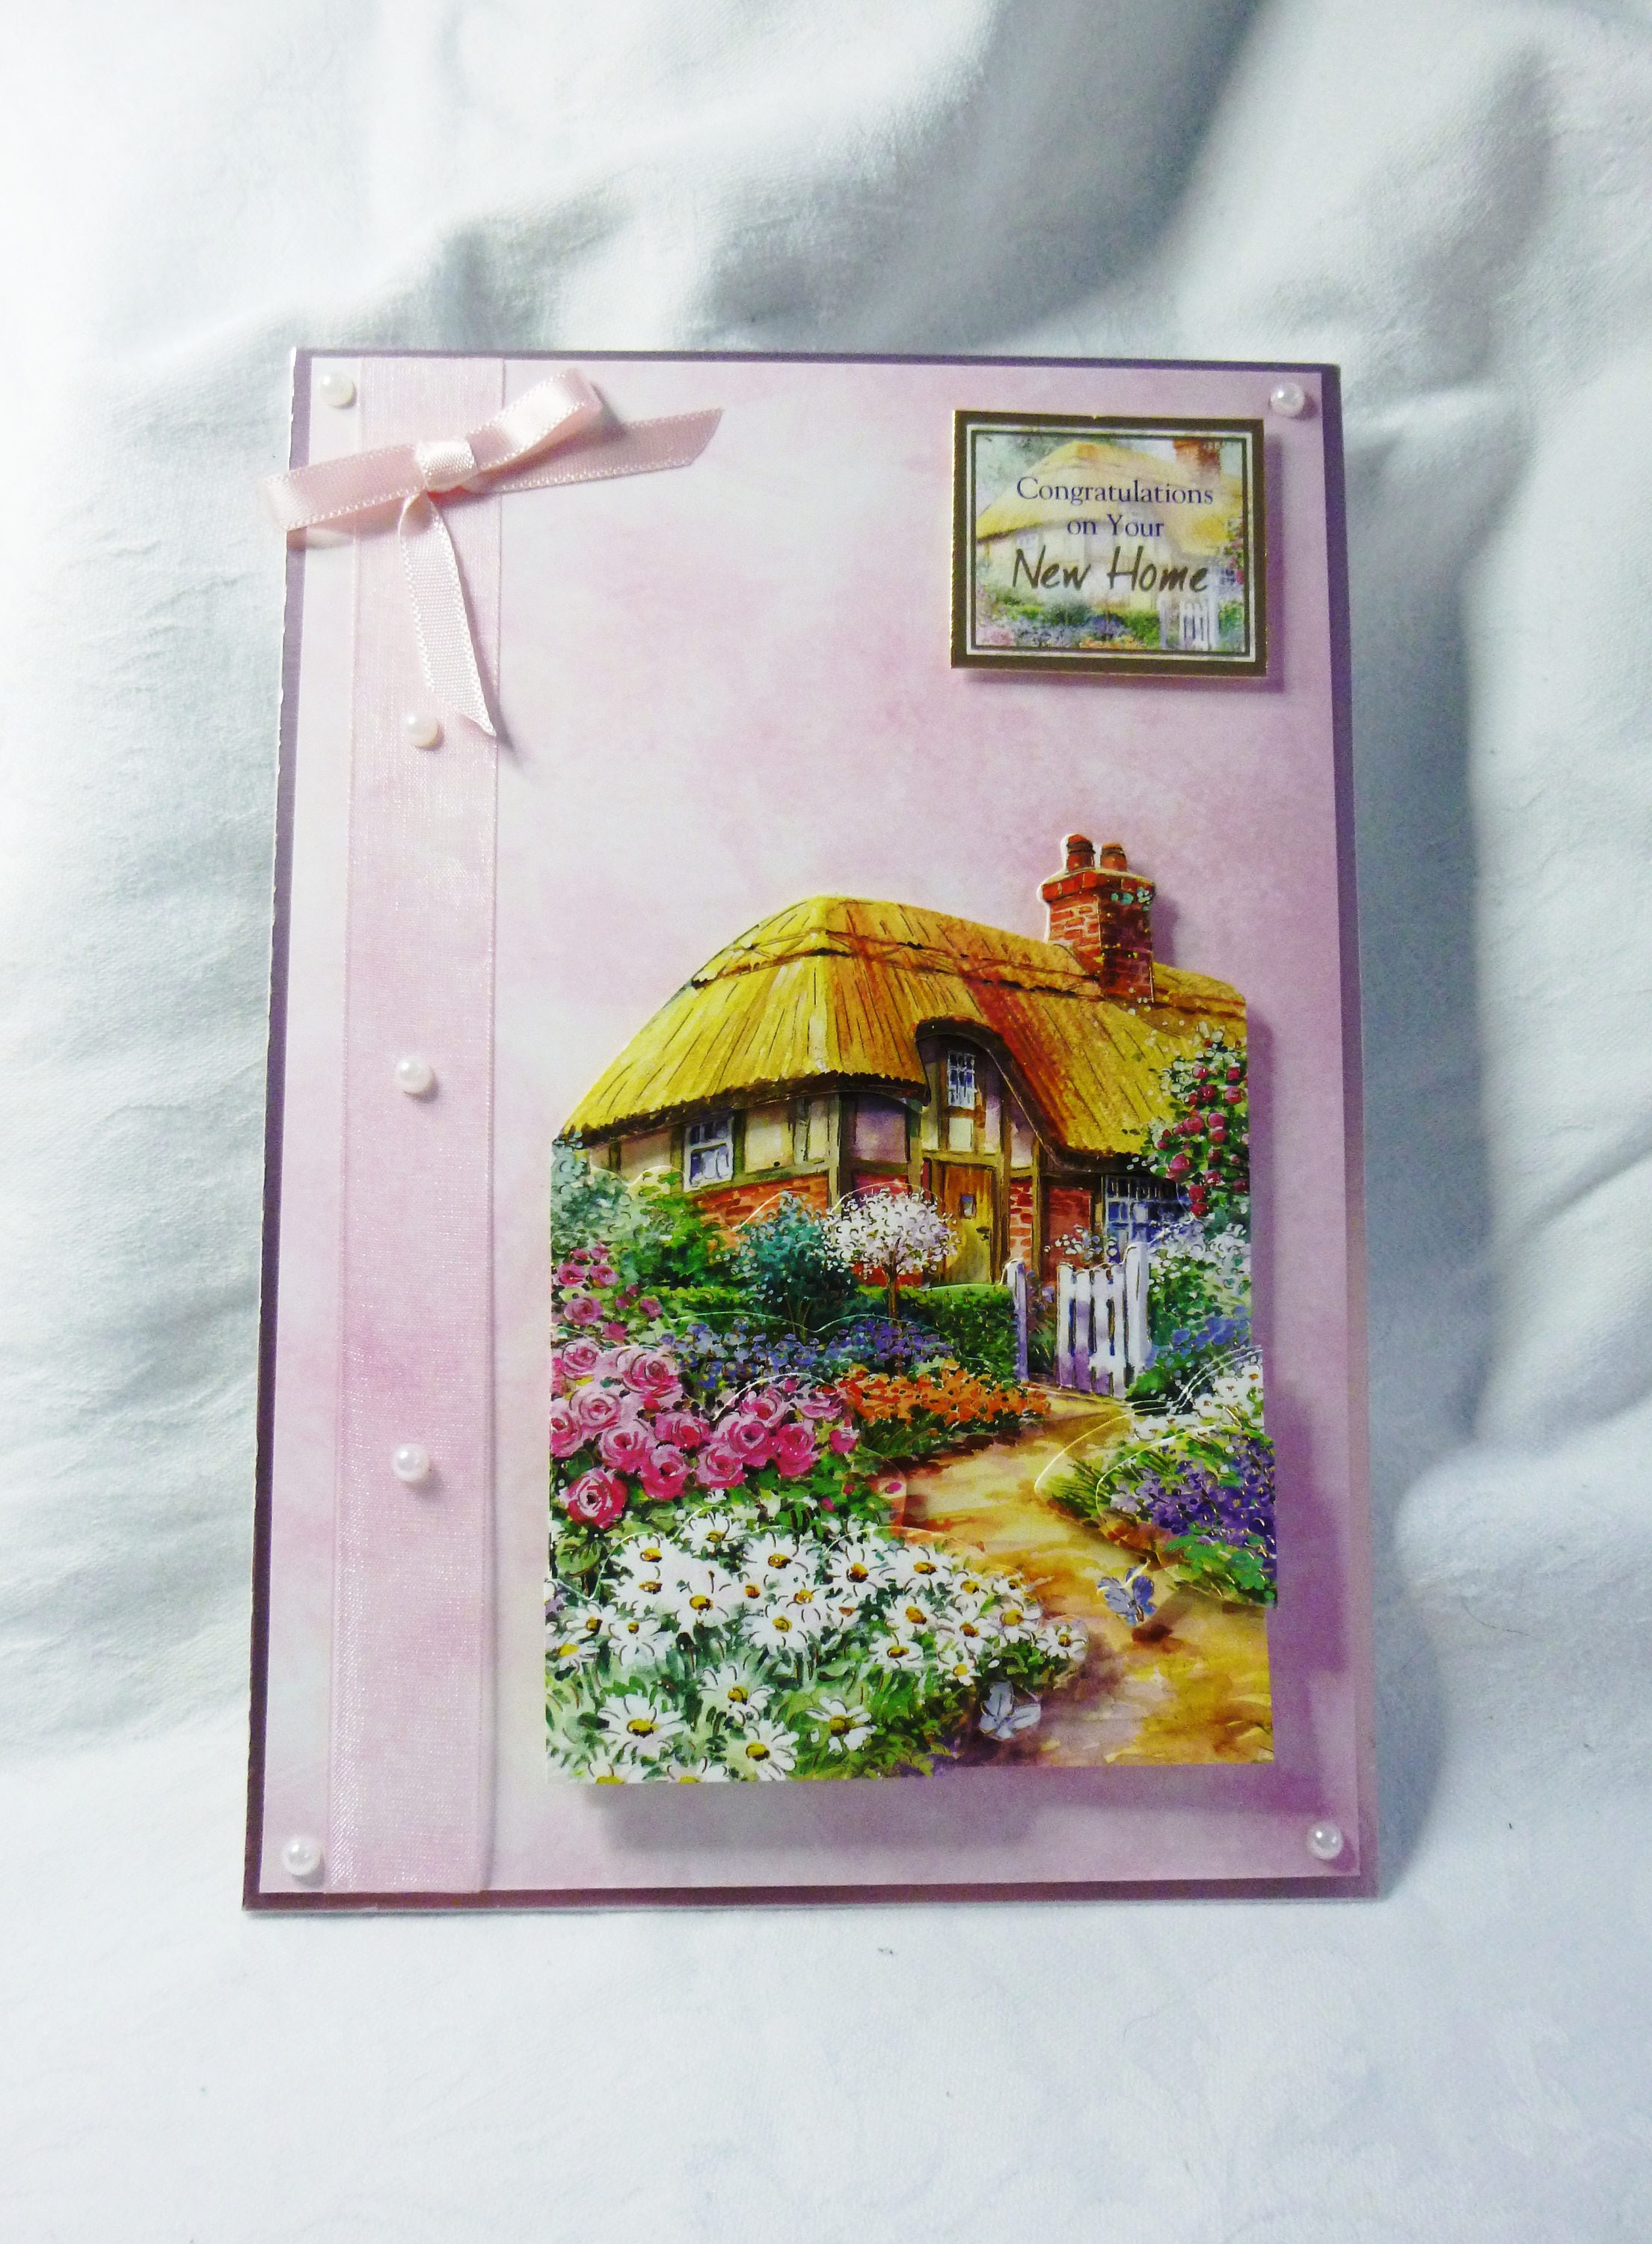 Country Cottage New Home Card Congratulations Card Greeting Card